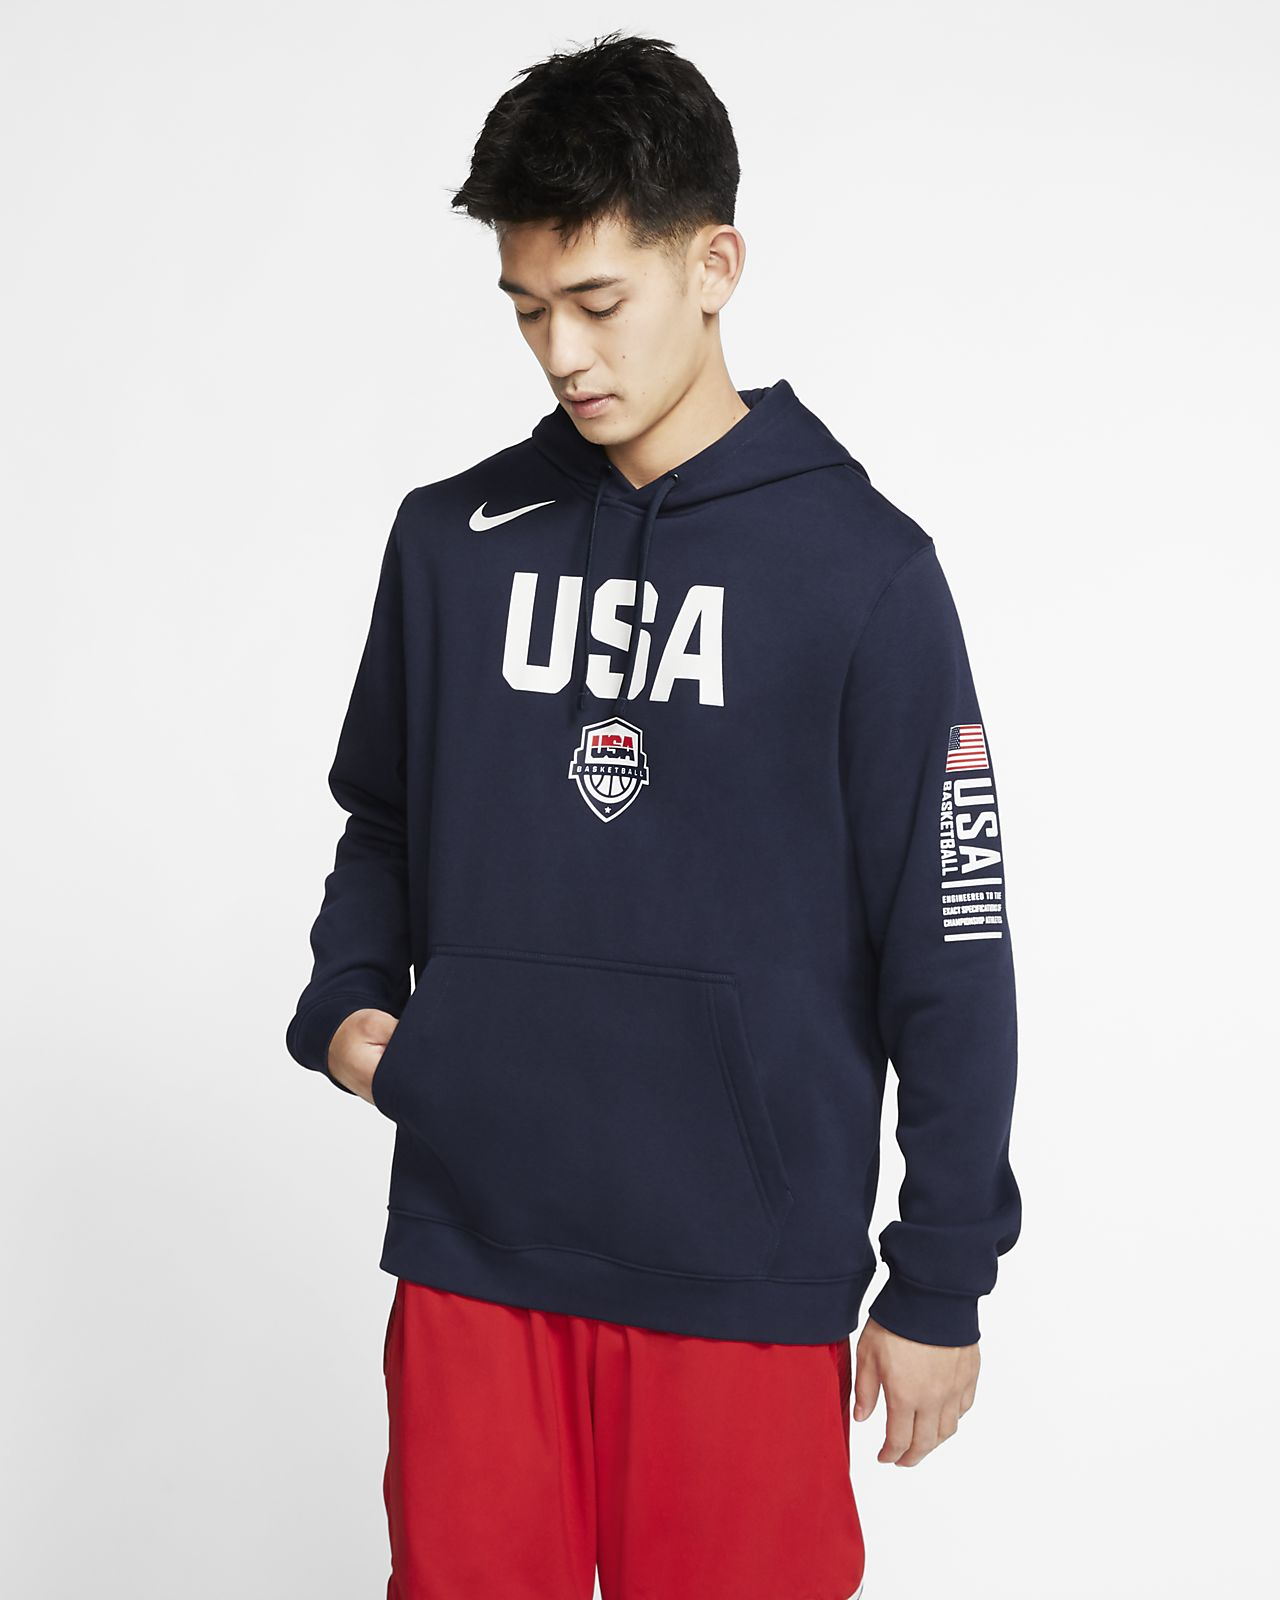 USA Nike Club Fleece Basketball Pullover für Herren